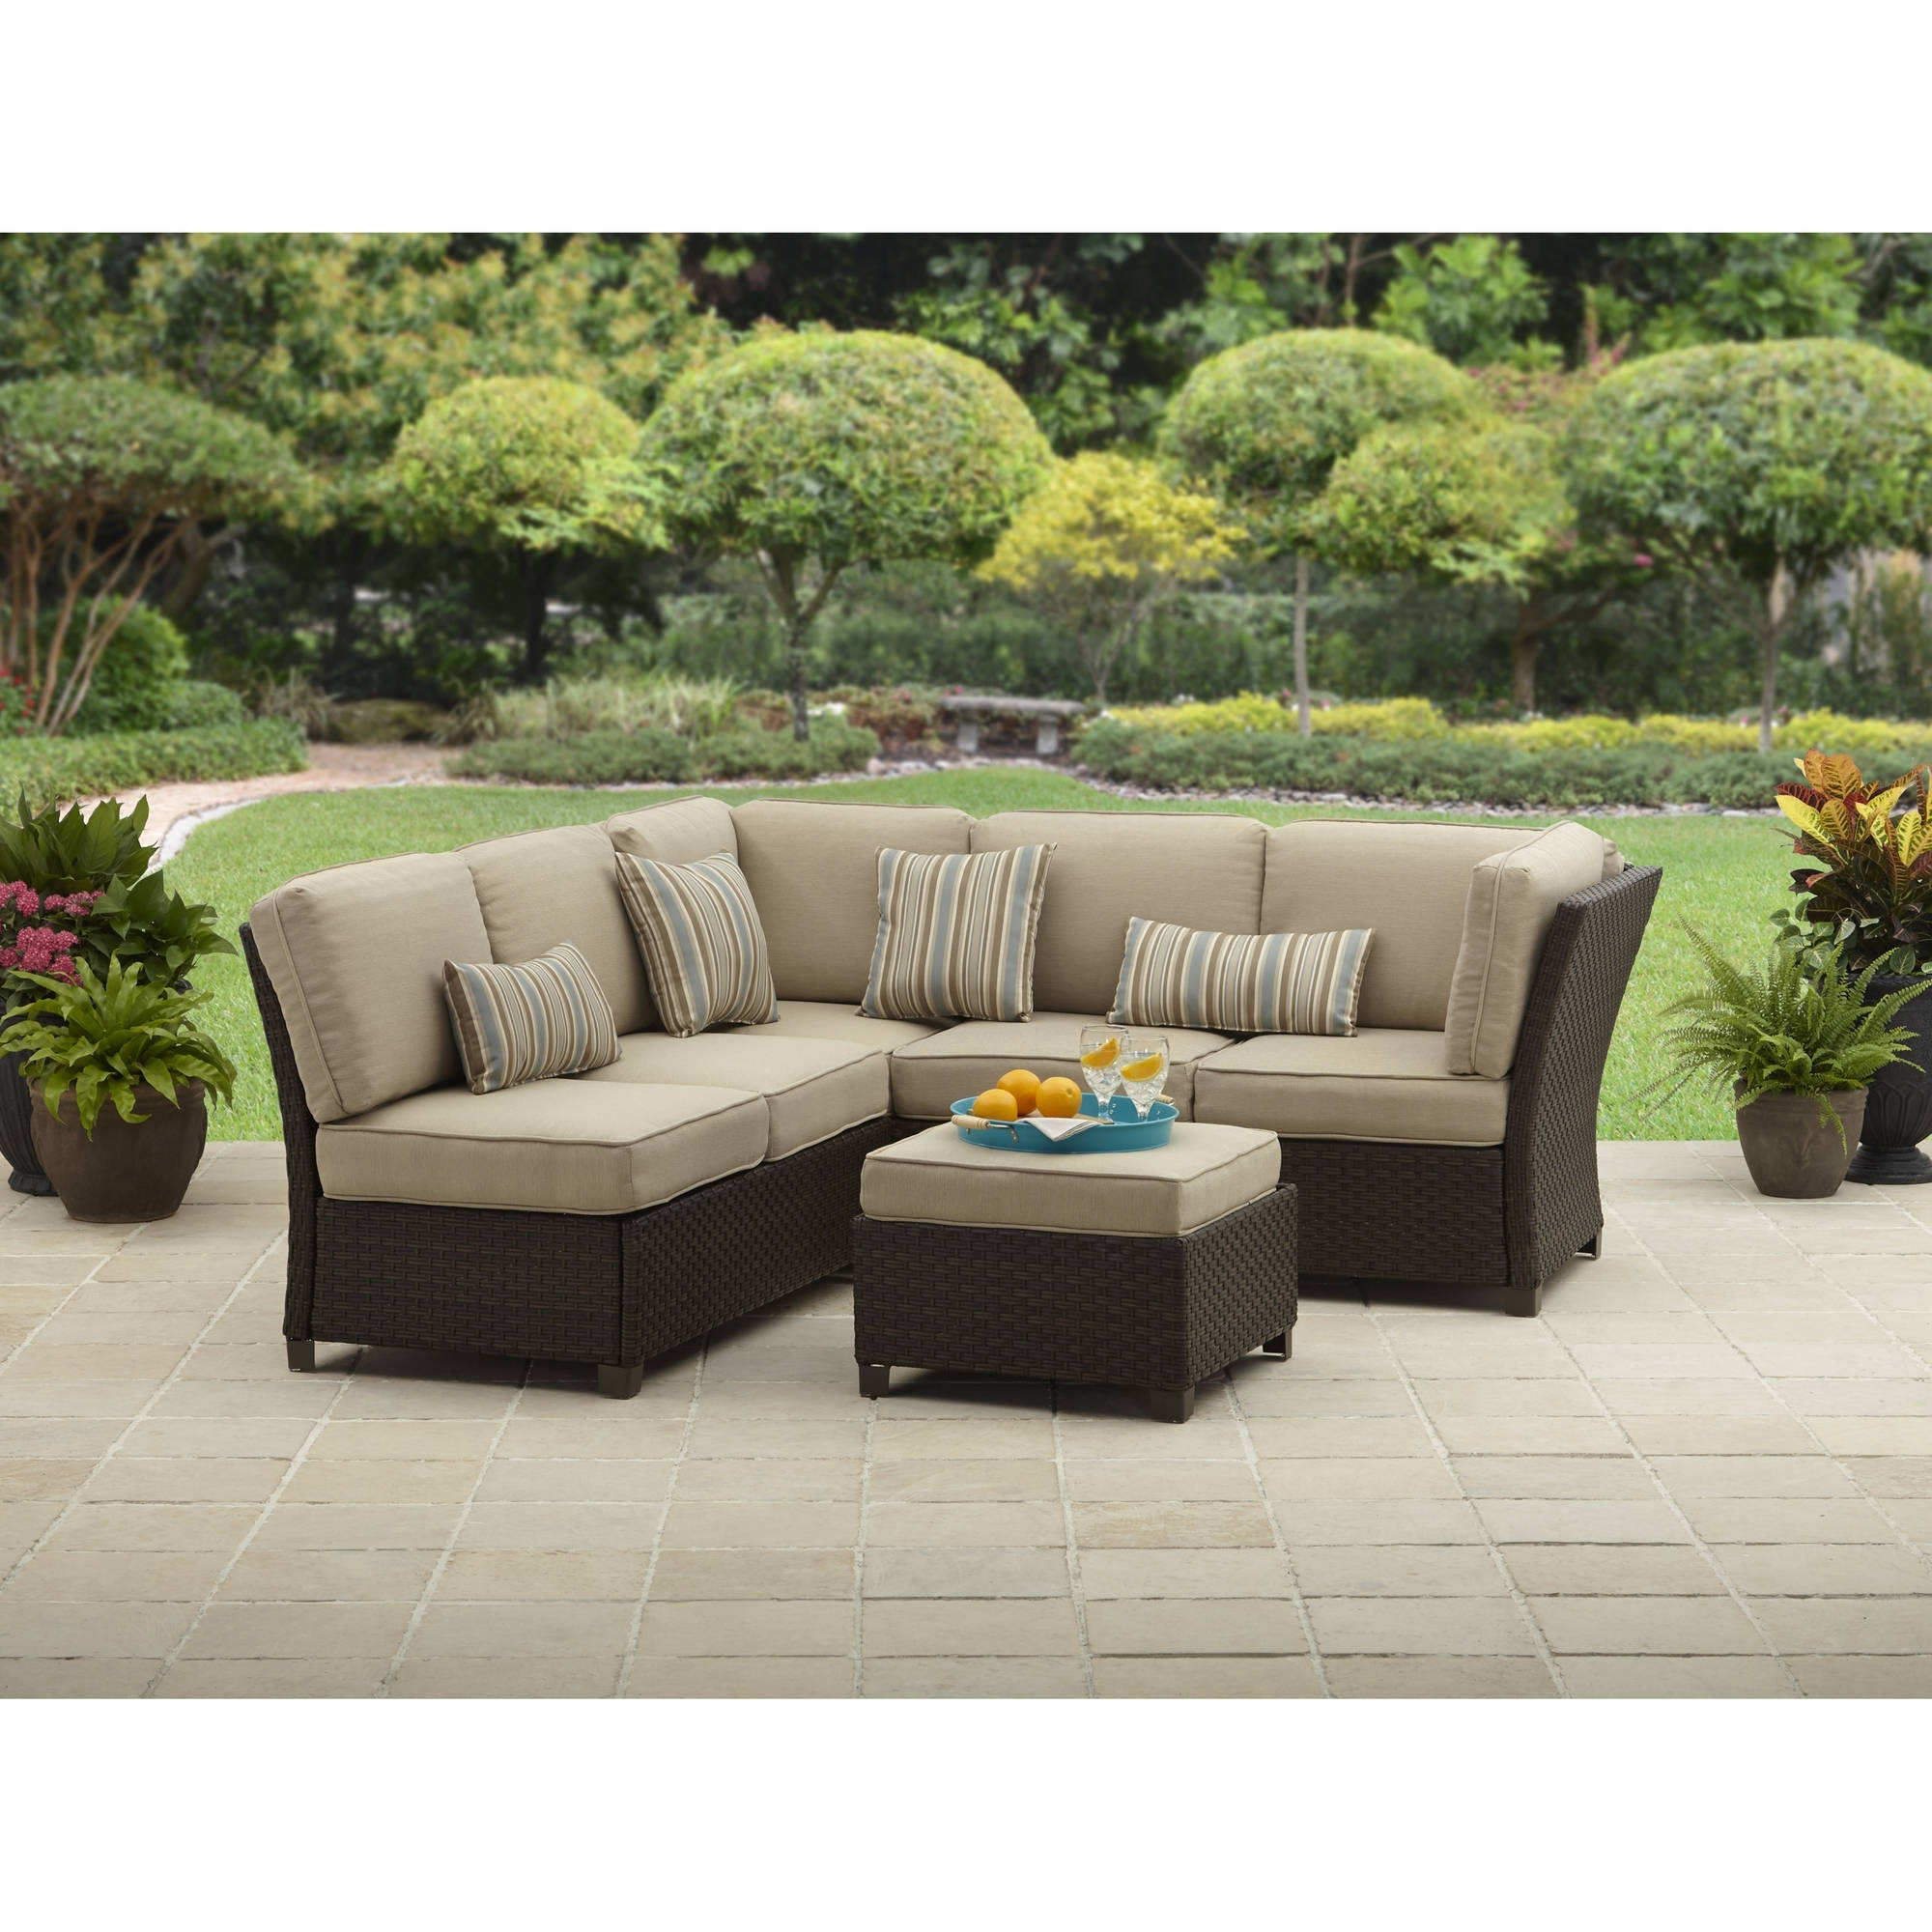 Preferred Better Homes And Gardens Cadence Wicker Outdoor Sectional Sofa Set Inside Sams Club Sectional Sofas (View 14 of 15)